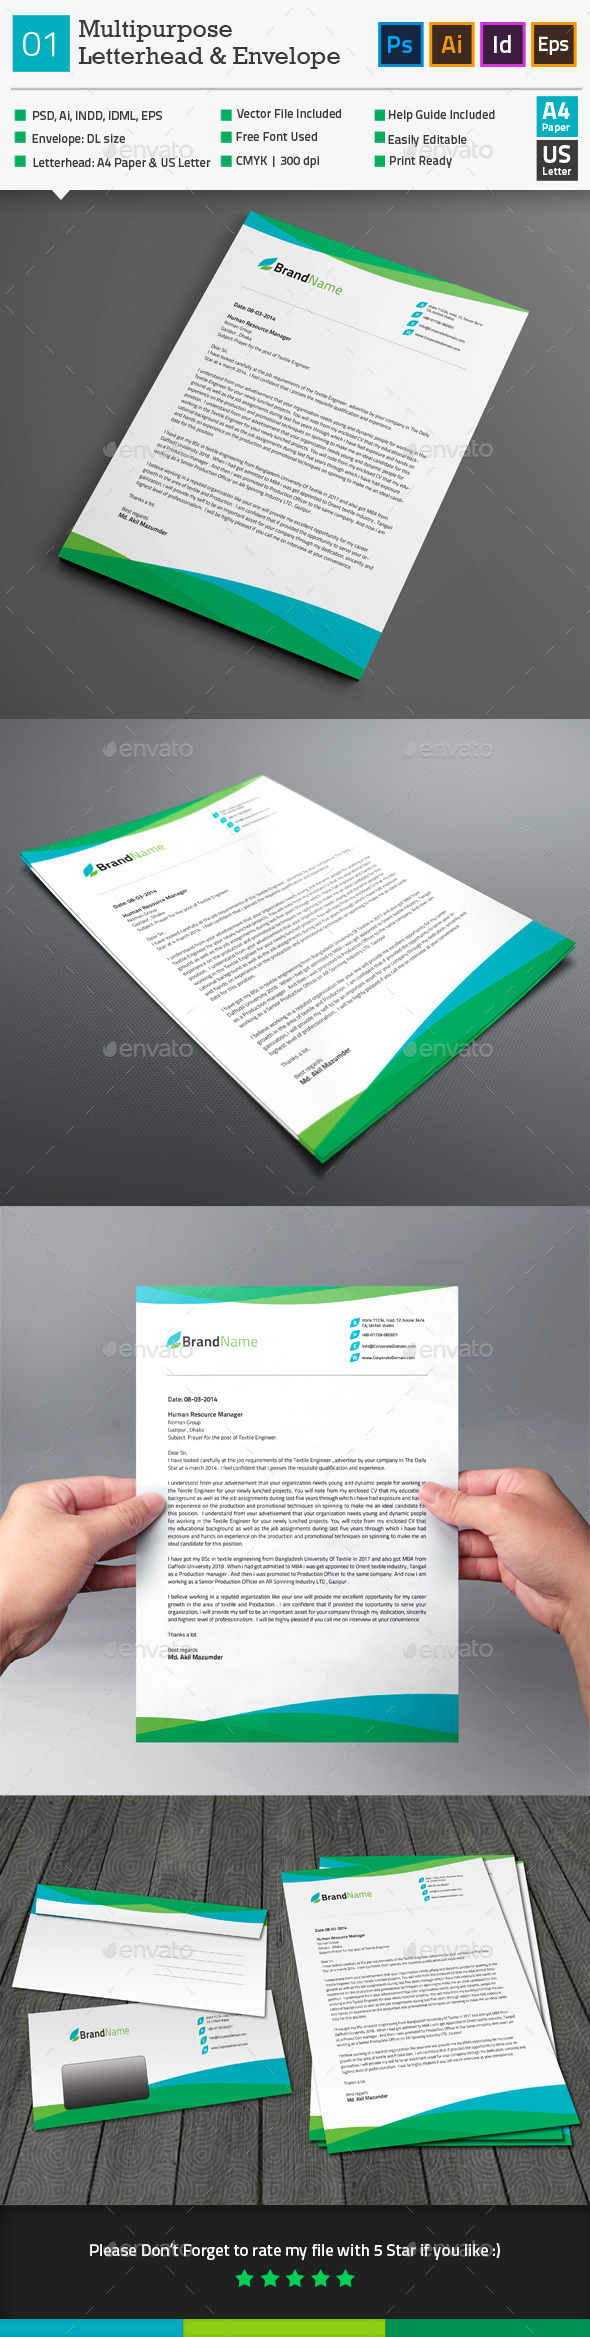 GraphicRiver Multipurpose Letterhead & Envelope Template 01 10250236